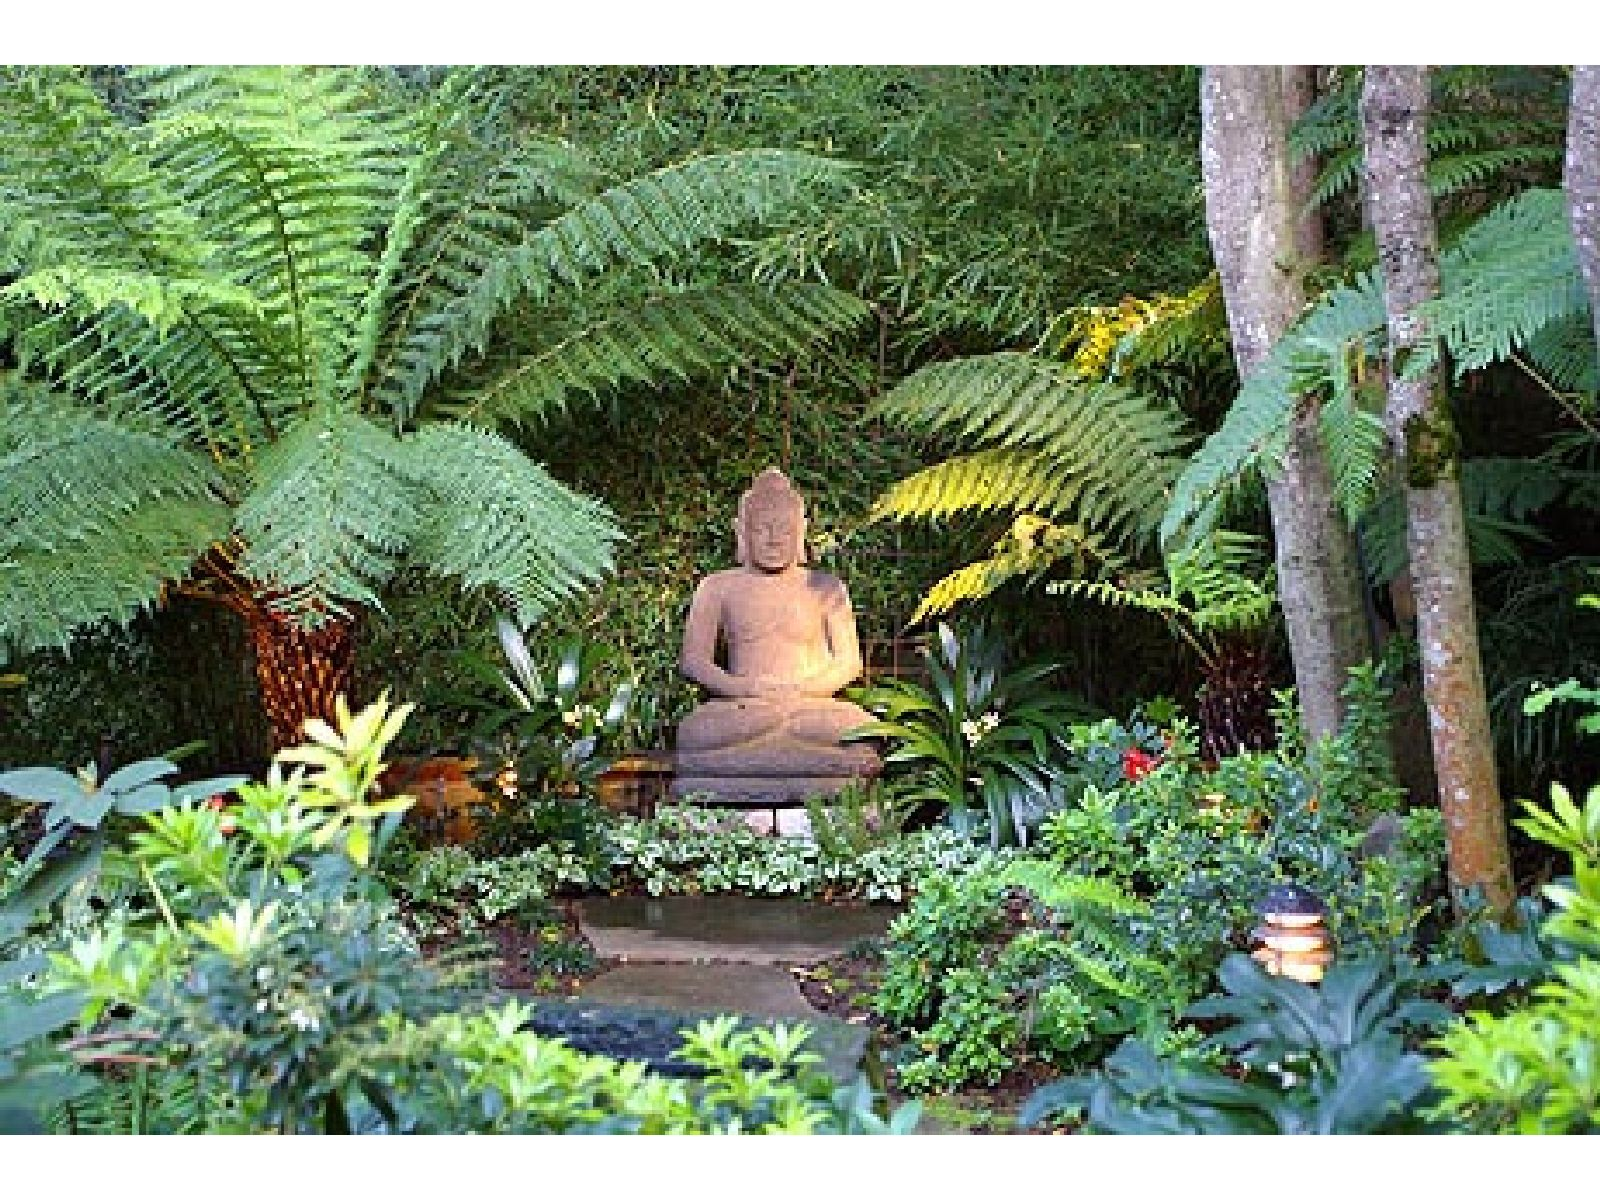 Buddha Statue In Garden Setting. #Landscaping #Garden #Fusionlandscapes